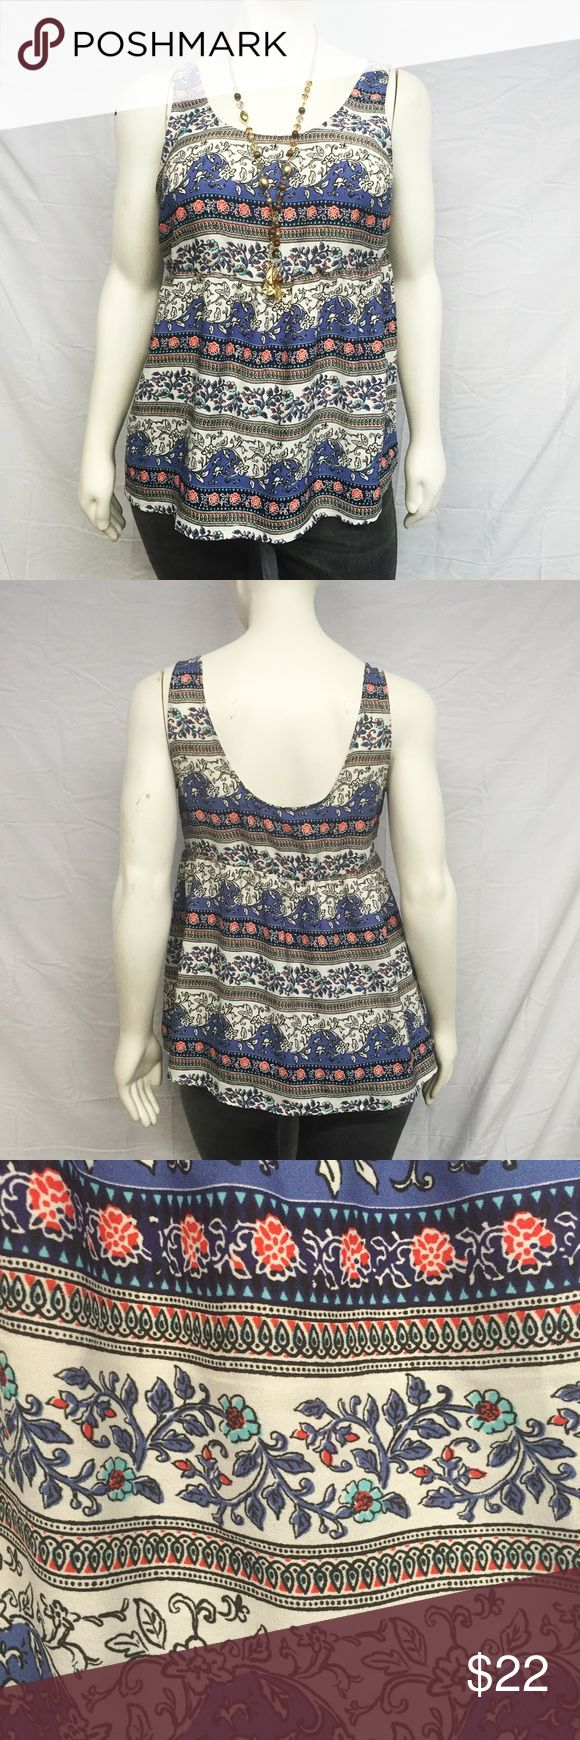 Torrid Boho Print Tank Cute boho print tank top from torrid! Empire waist. Looks awesome with statement boho jewelry! New with tags, never worn. Smoke and pet free home. torrid Tops Tank Tops